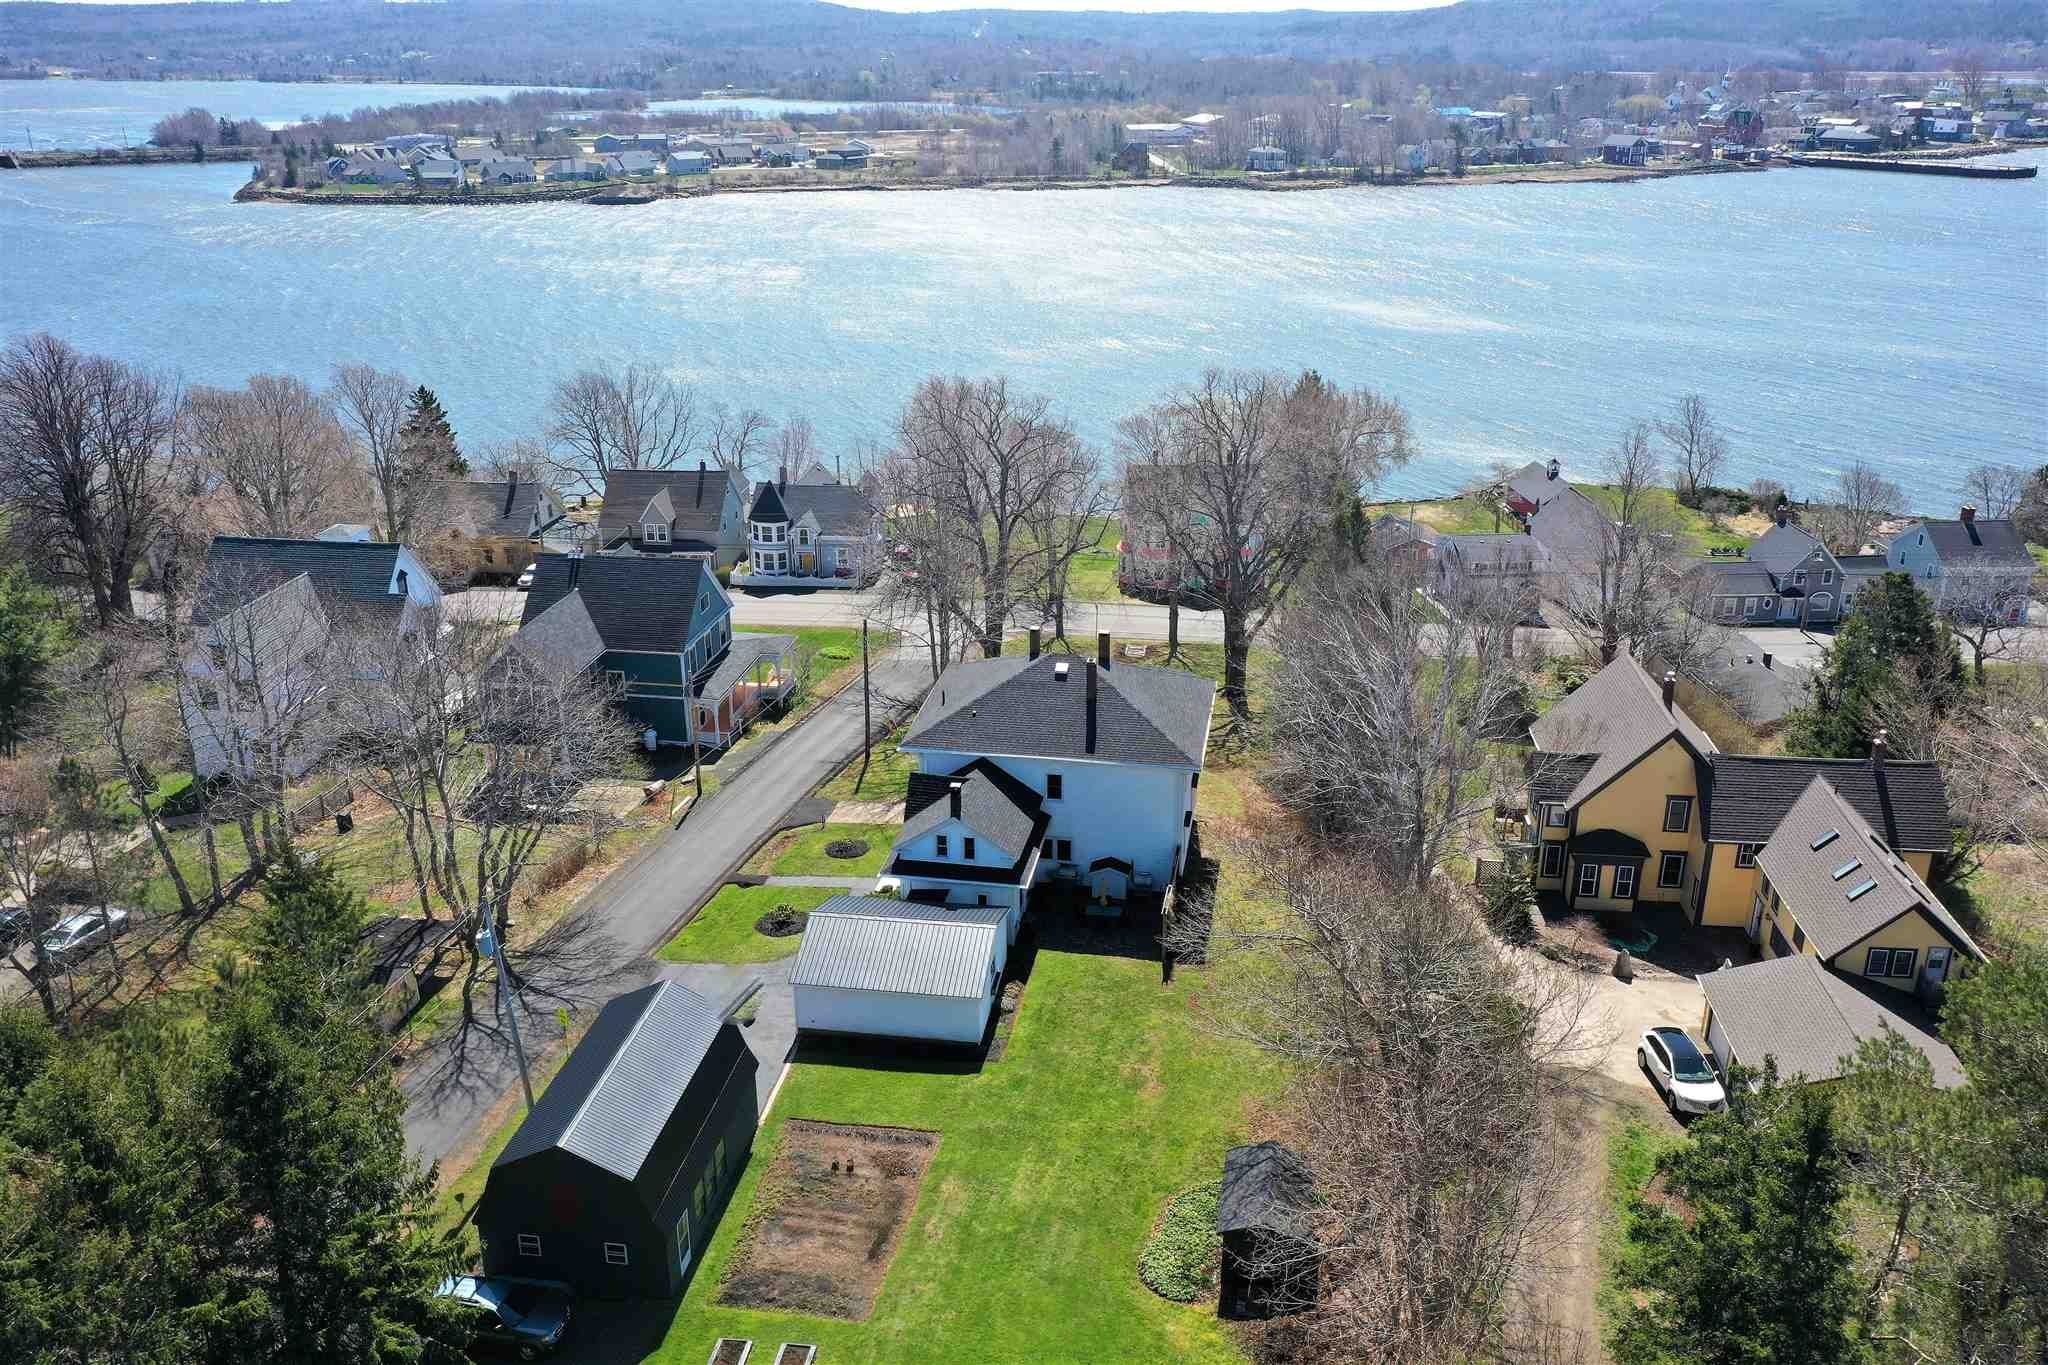 Main Photo: 11 TROOP Lane in Granville Ferry: 400-Annapolis County Residential for sale (Annapolis Valley)  : MLS®# 202109830